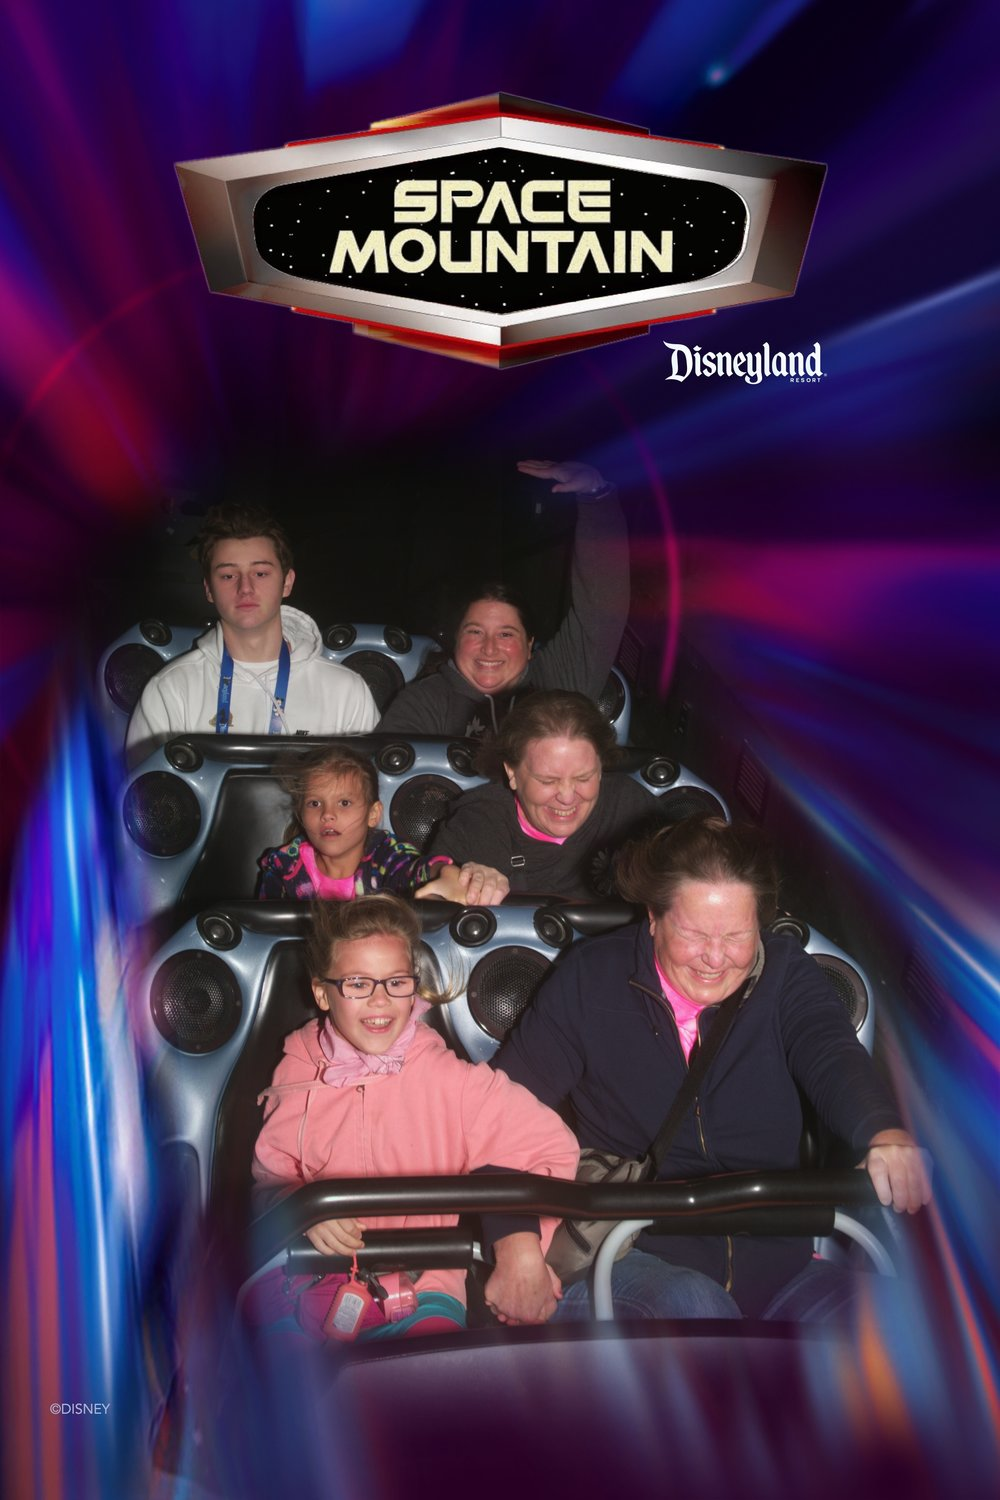 space-mountain-1.JPG